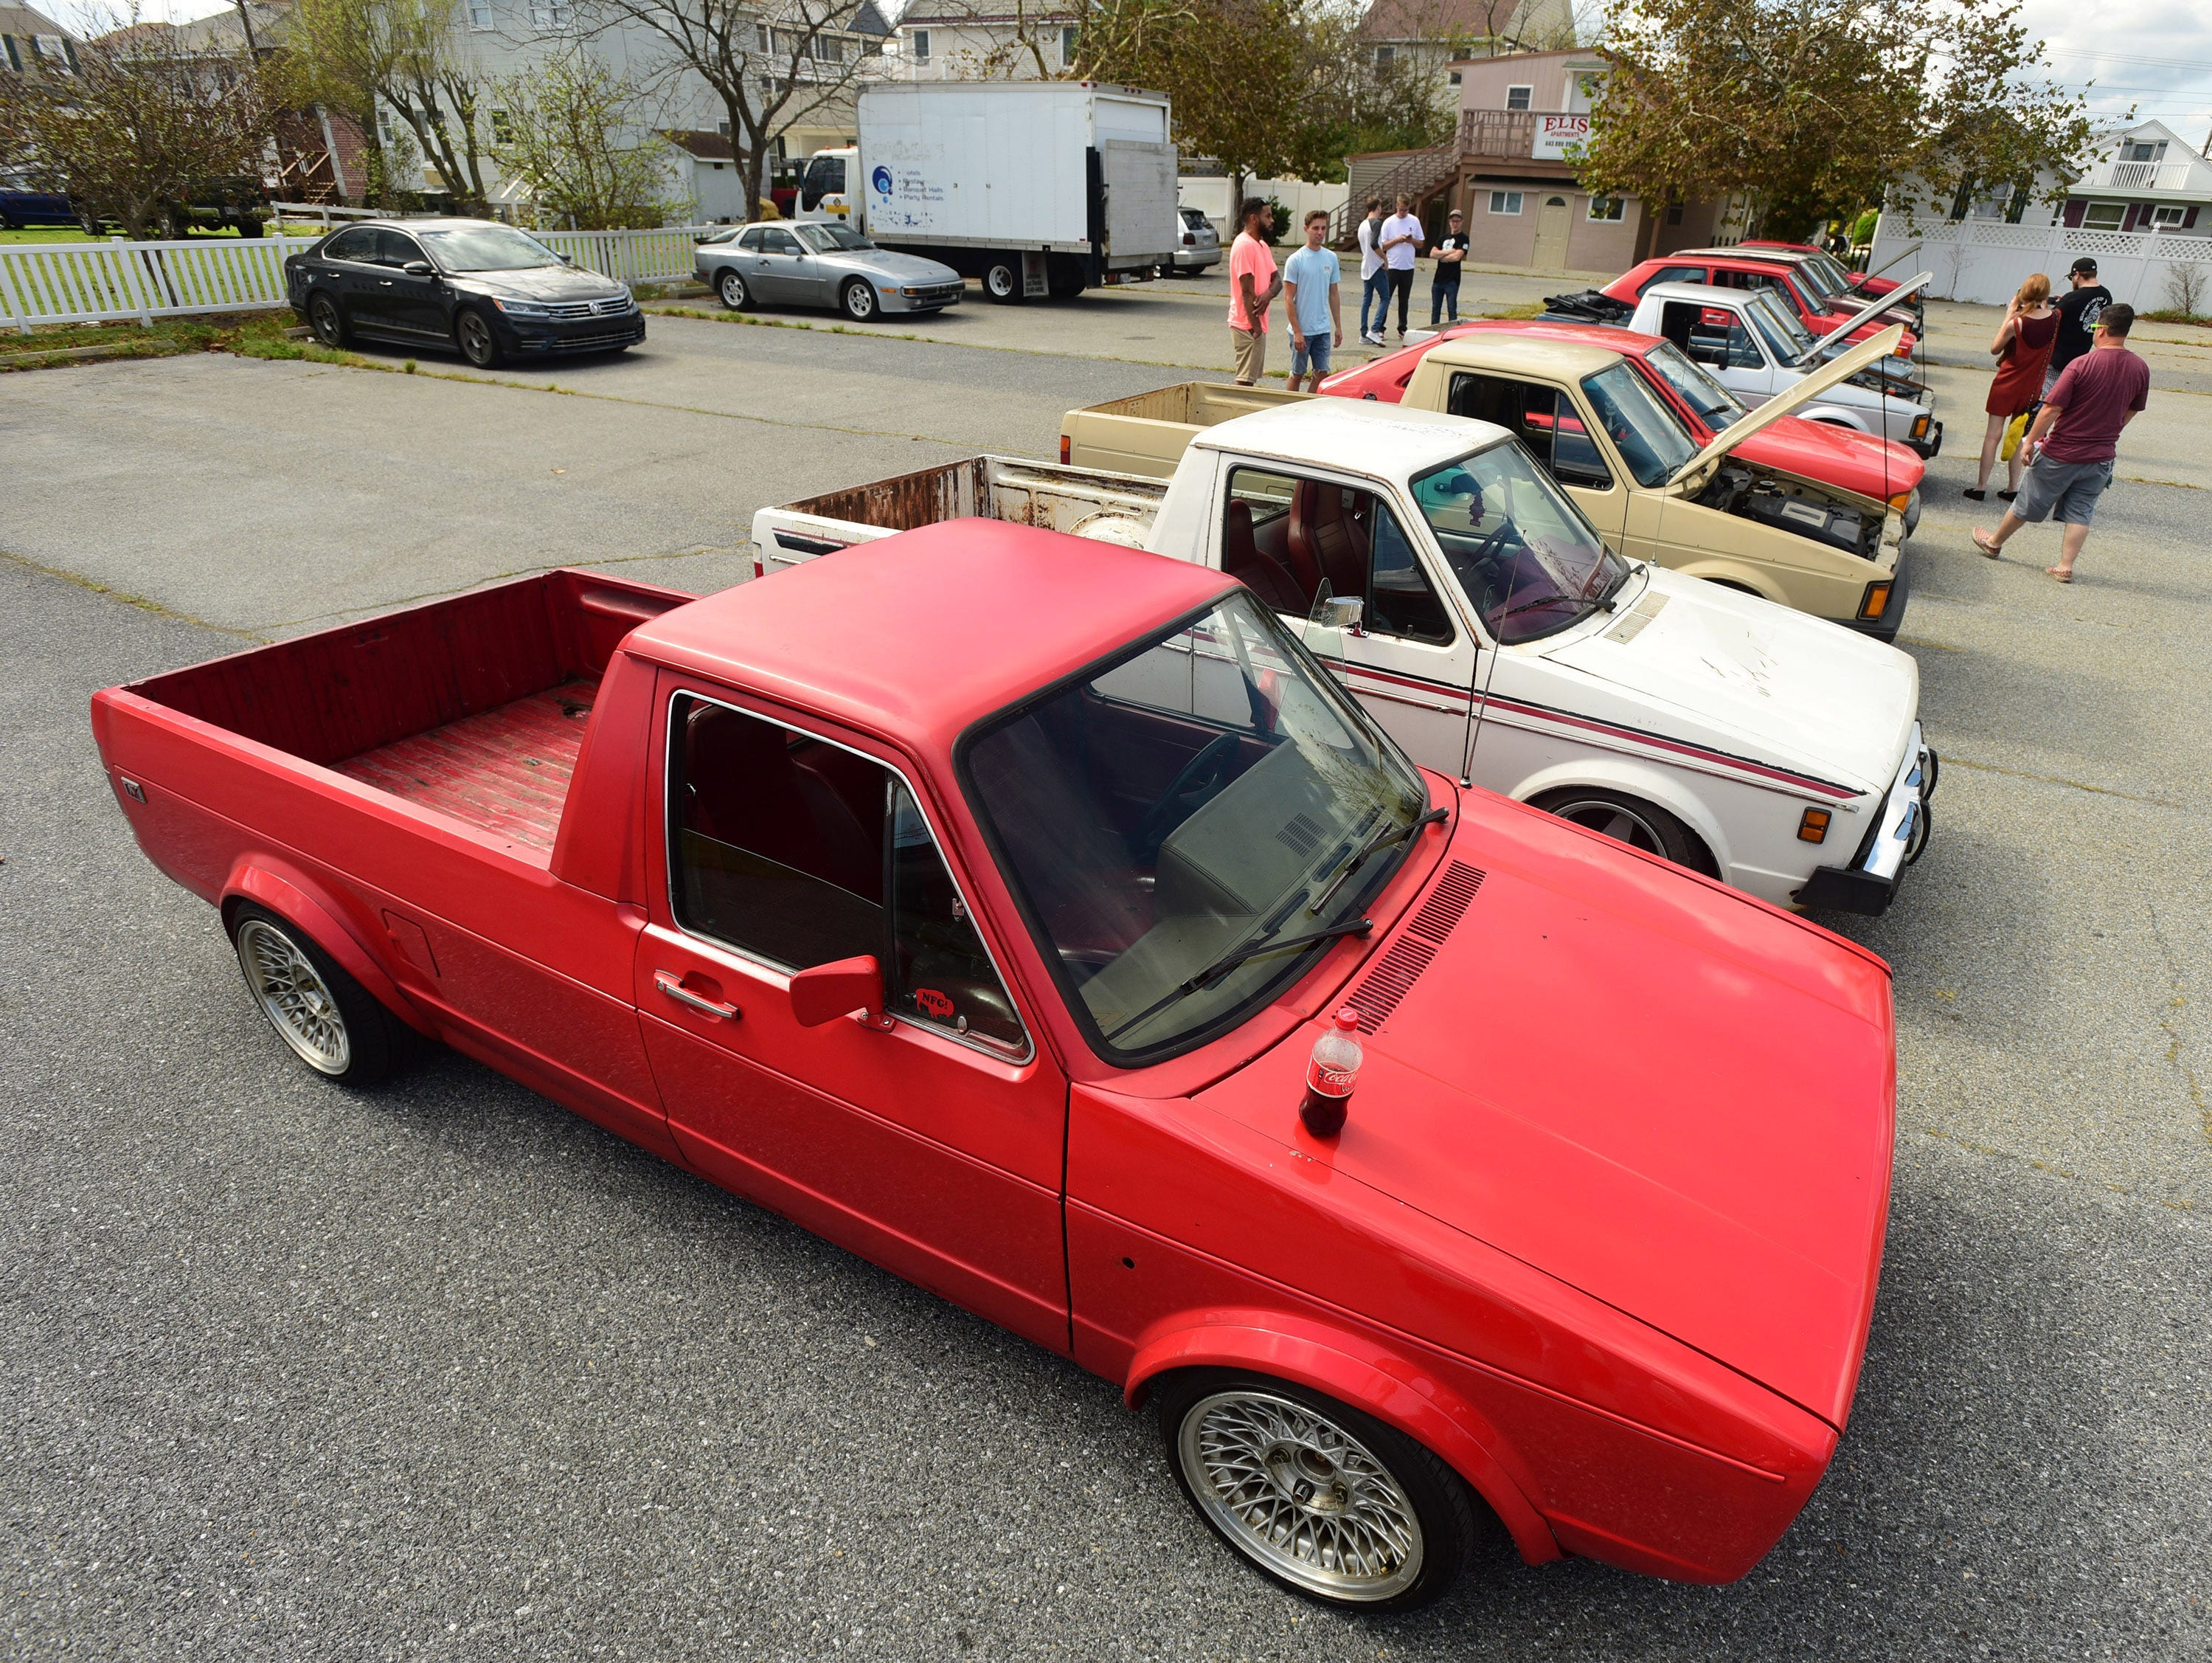 Spectators look at lowered VW pickups at the unofficial H2Oi event in the Pickles Pub parking lot. The event was moved officially to Atlantic City, but continued for many people in Ocean City on Saturday, Sept. 29, 2018.